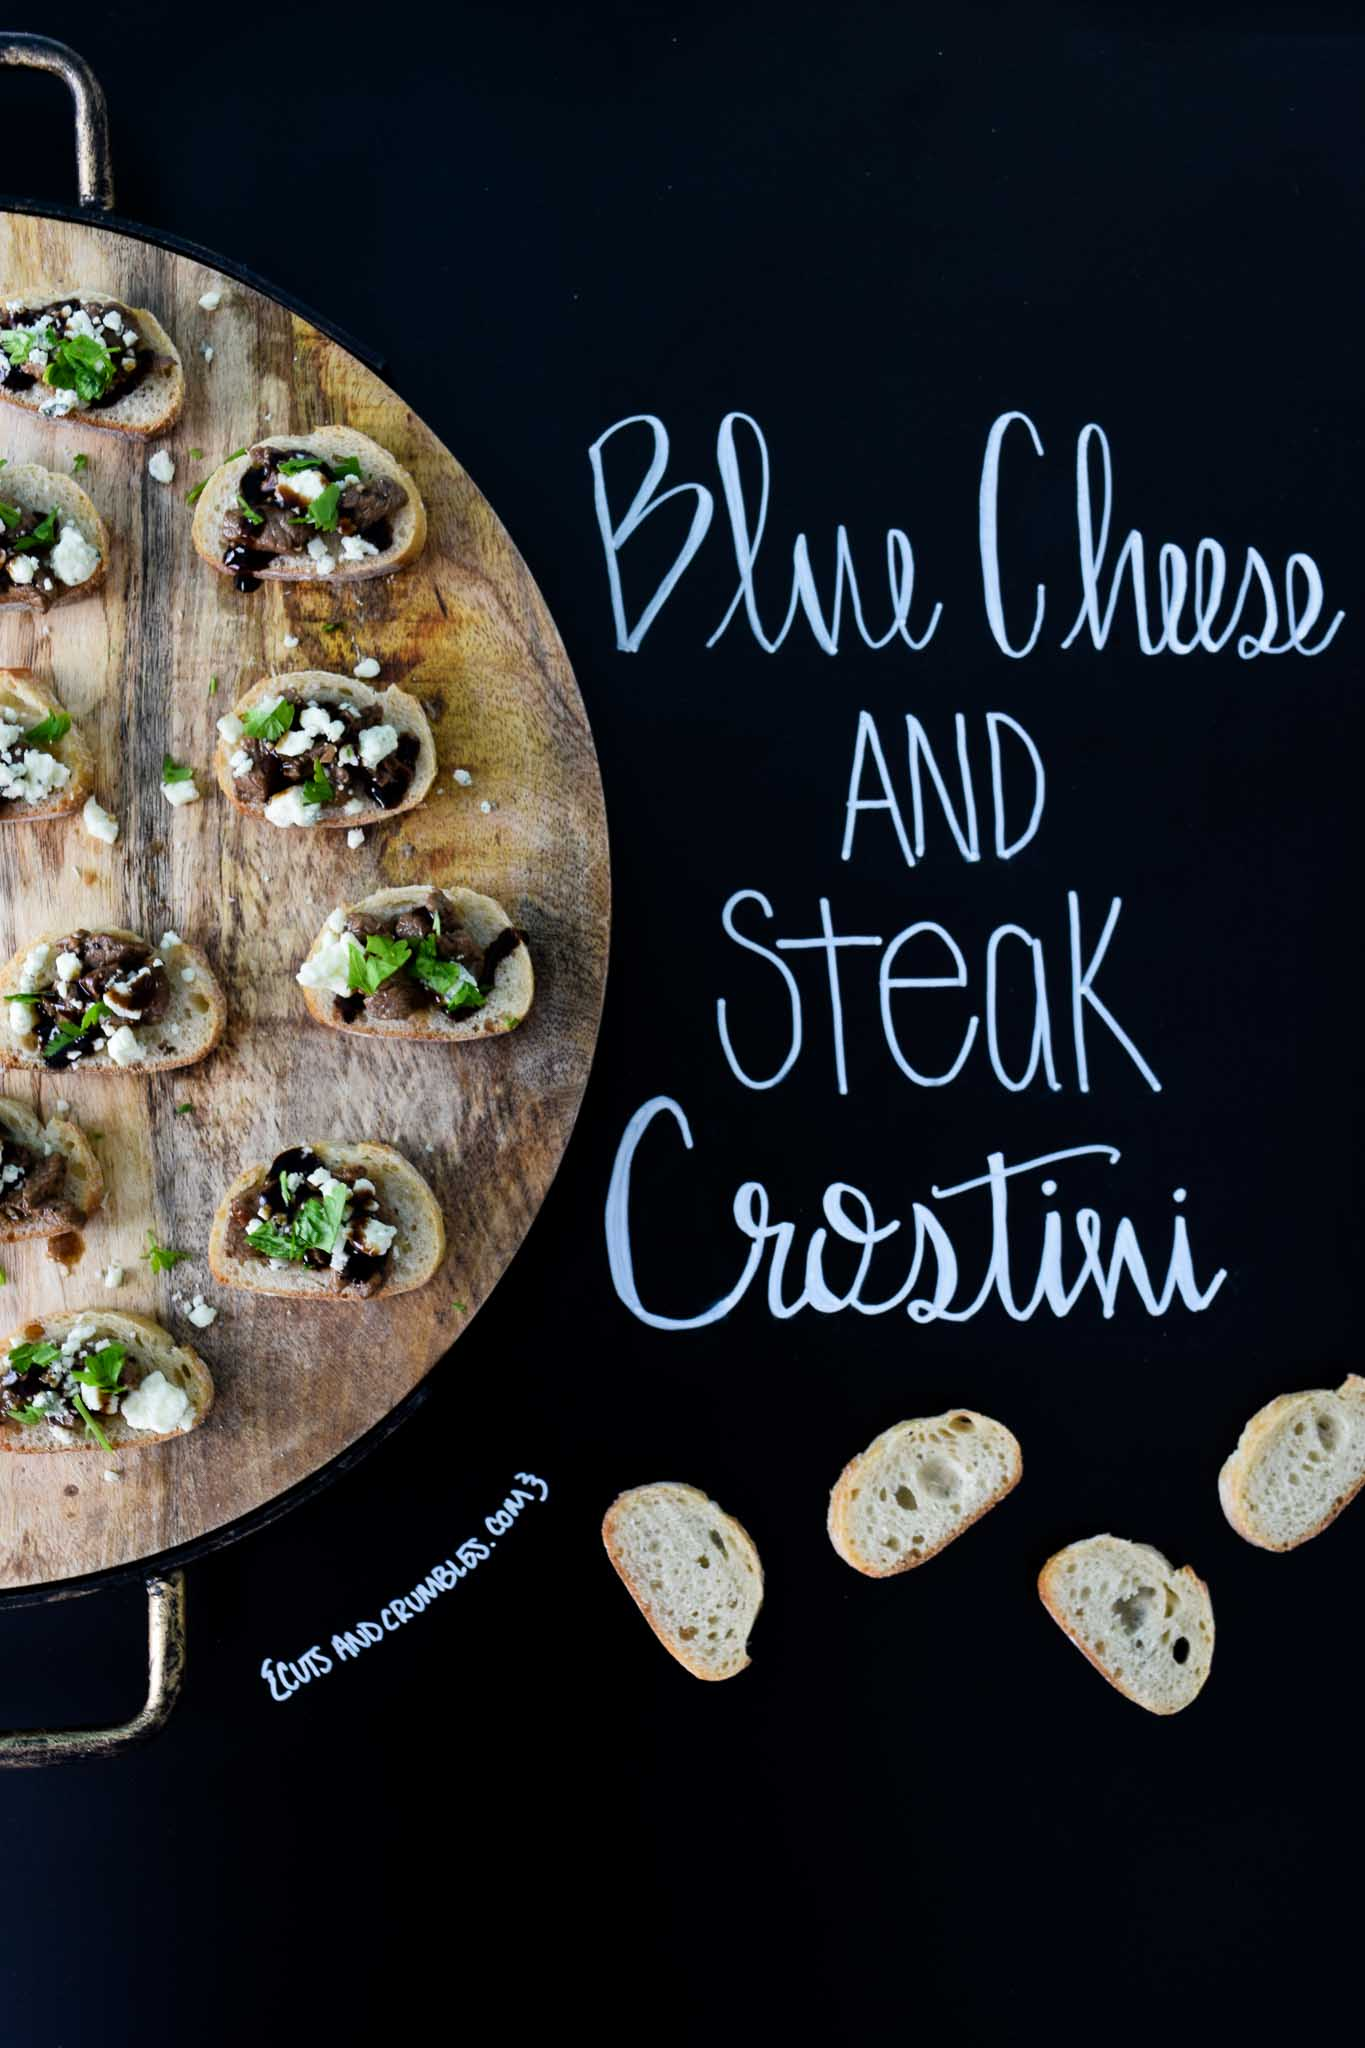 Blue Cheese and Steak Crostini